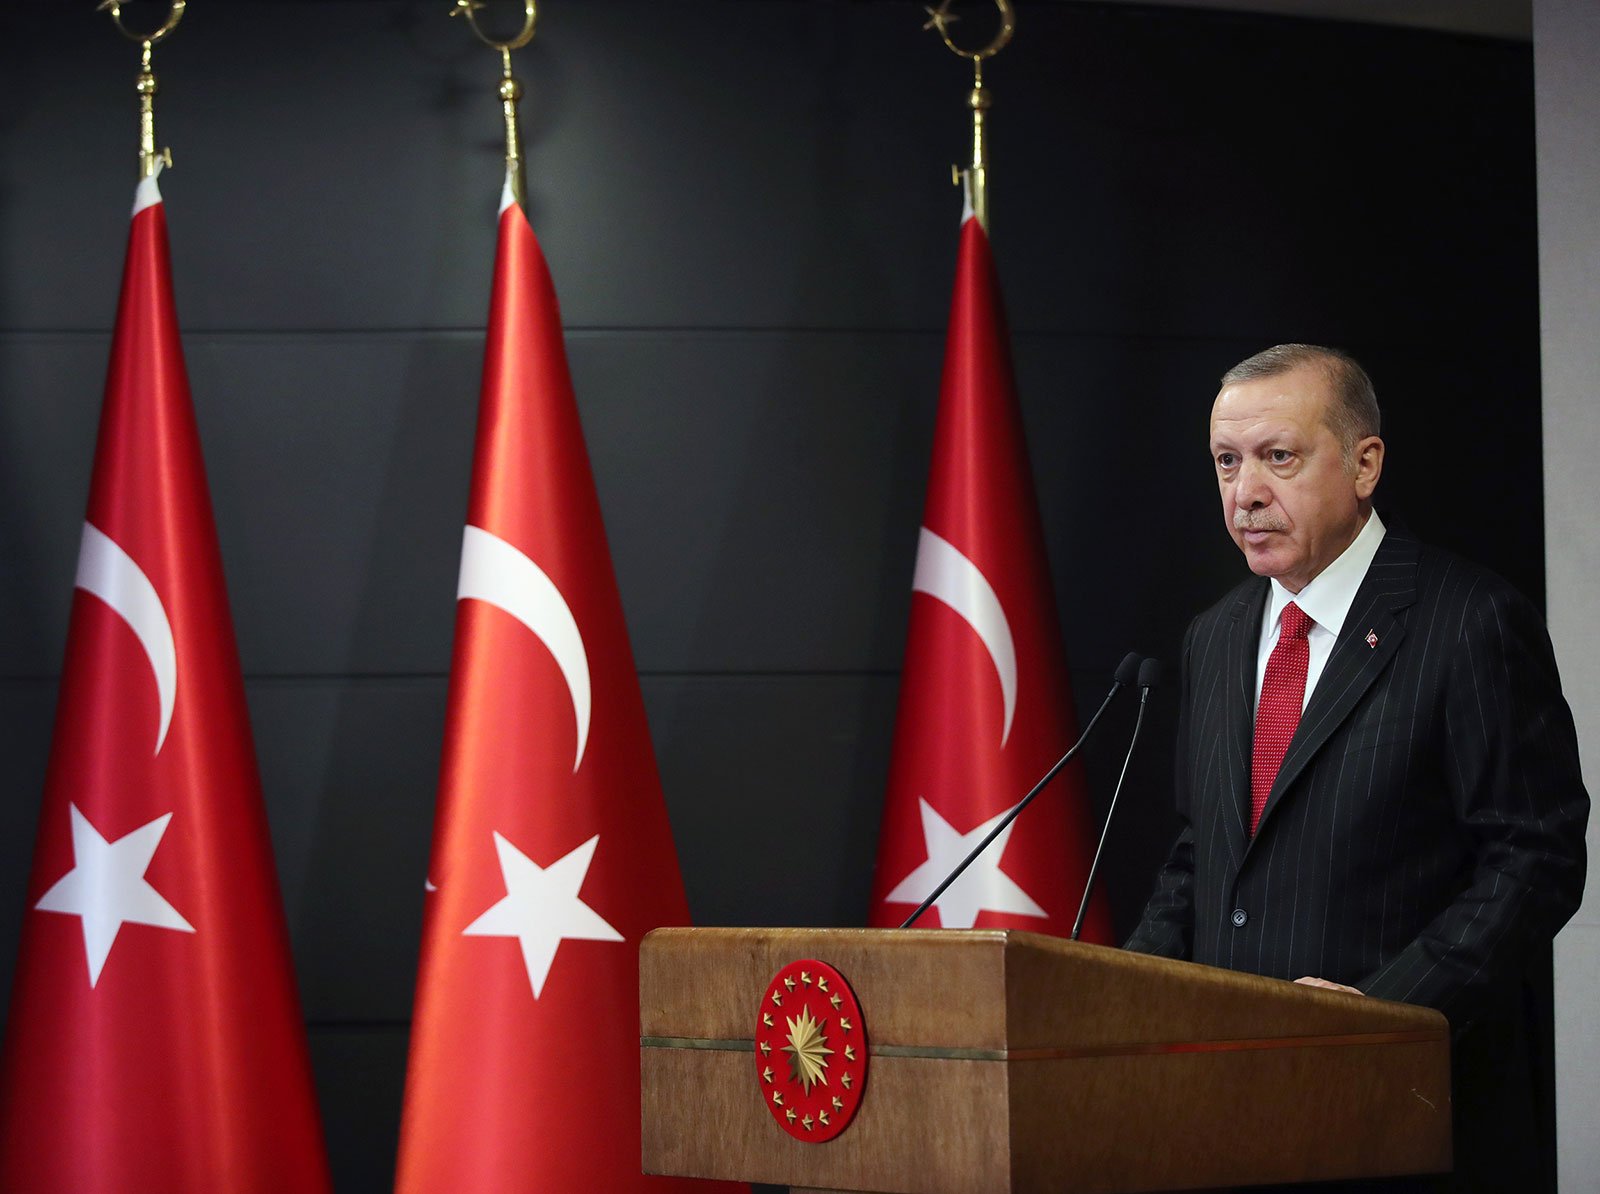 Turkish President Recep Tayyip Erdogan speaks during a press conference on April 6 in Istanbul, Turkey.